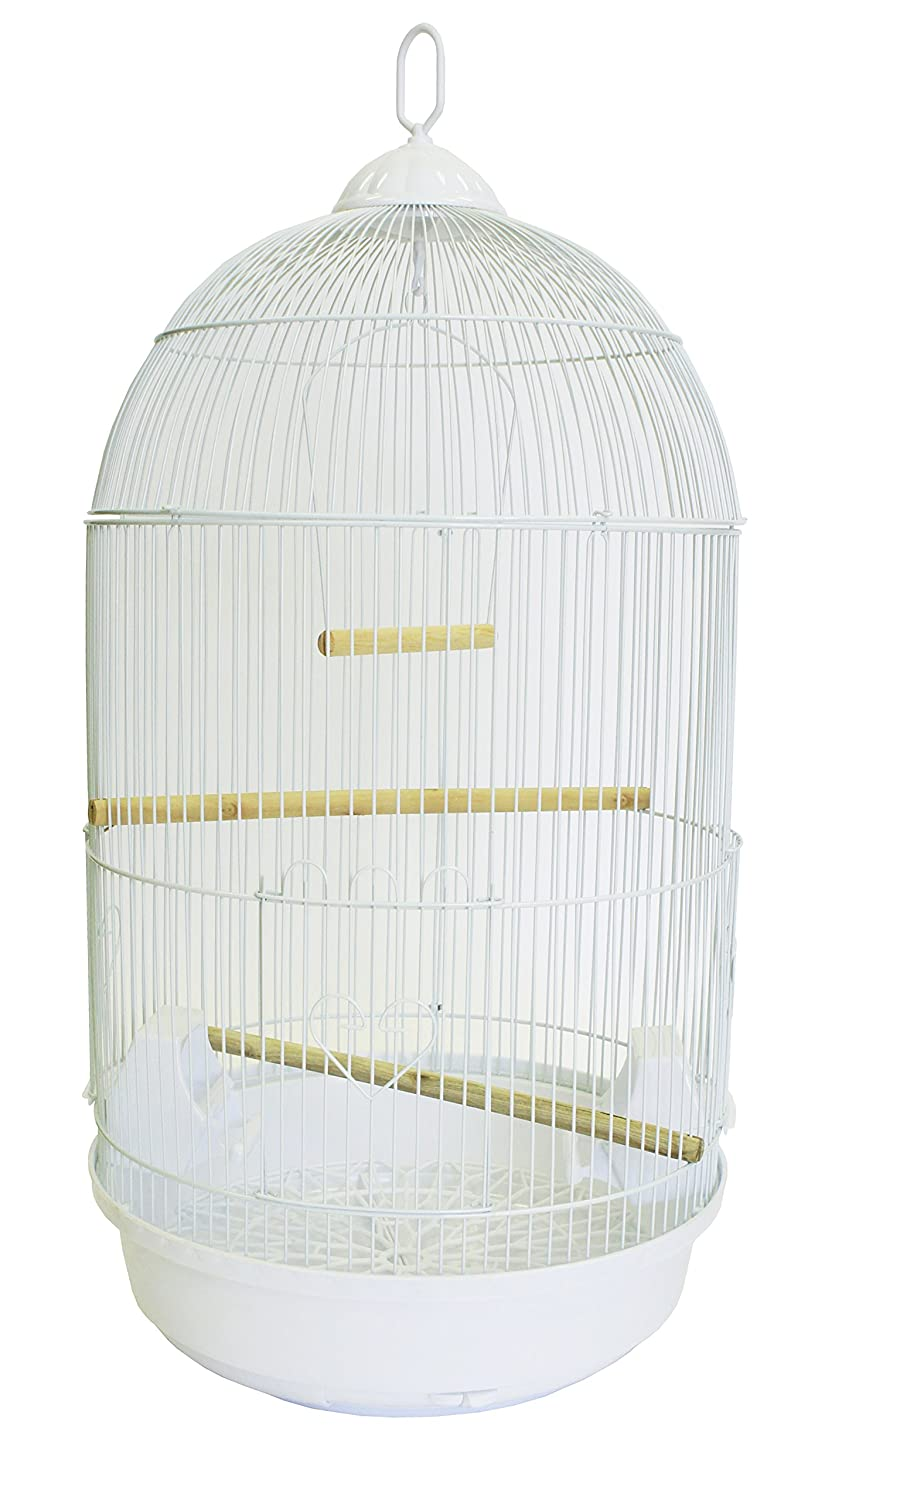 YML A1594 Bar Spacing Round Bird Cage, Large, White A1594WHT